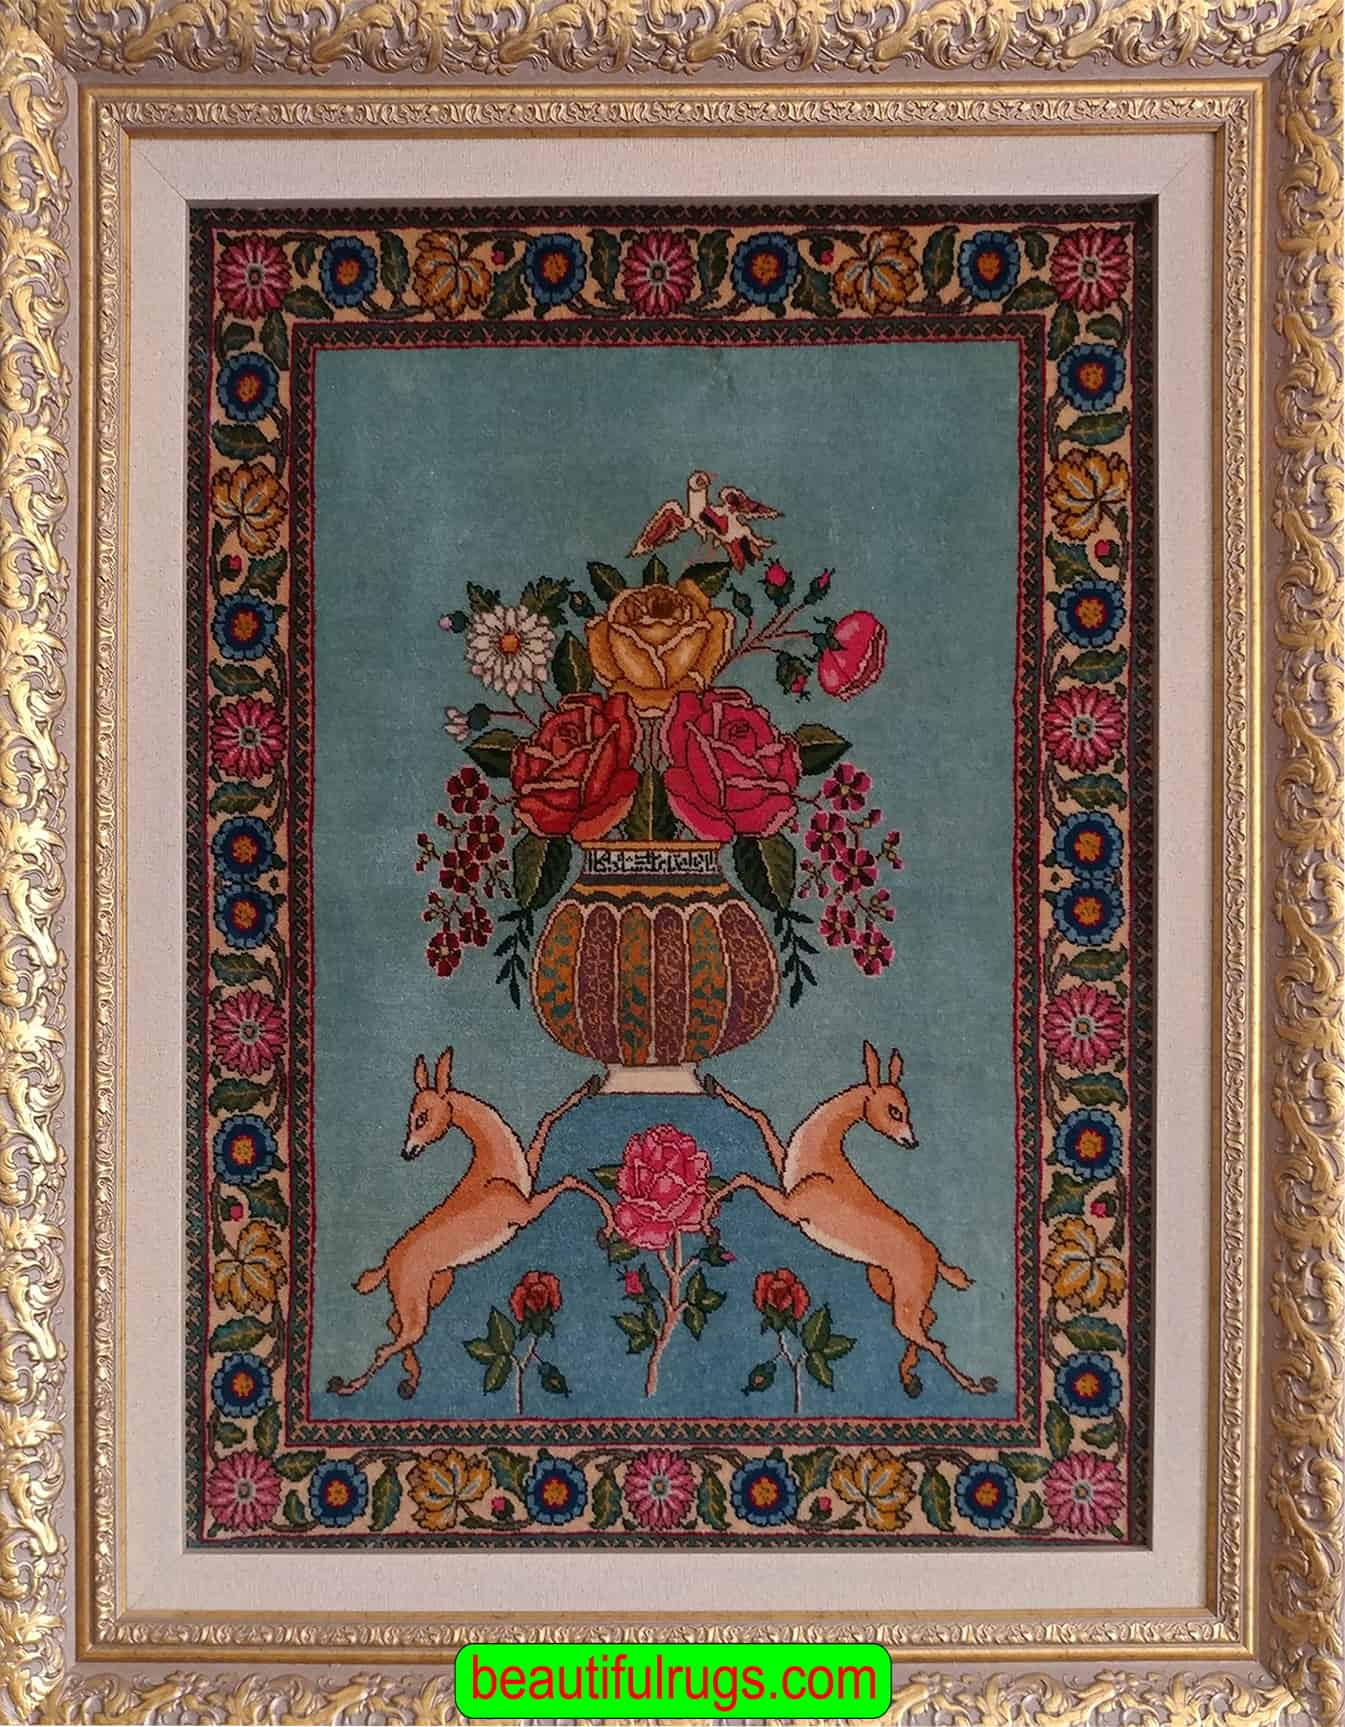 Pictorial Rugs Antique Tableau Wall Rugs Where To Buy Pictorial Rugs